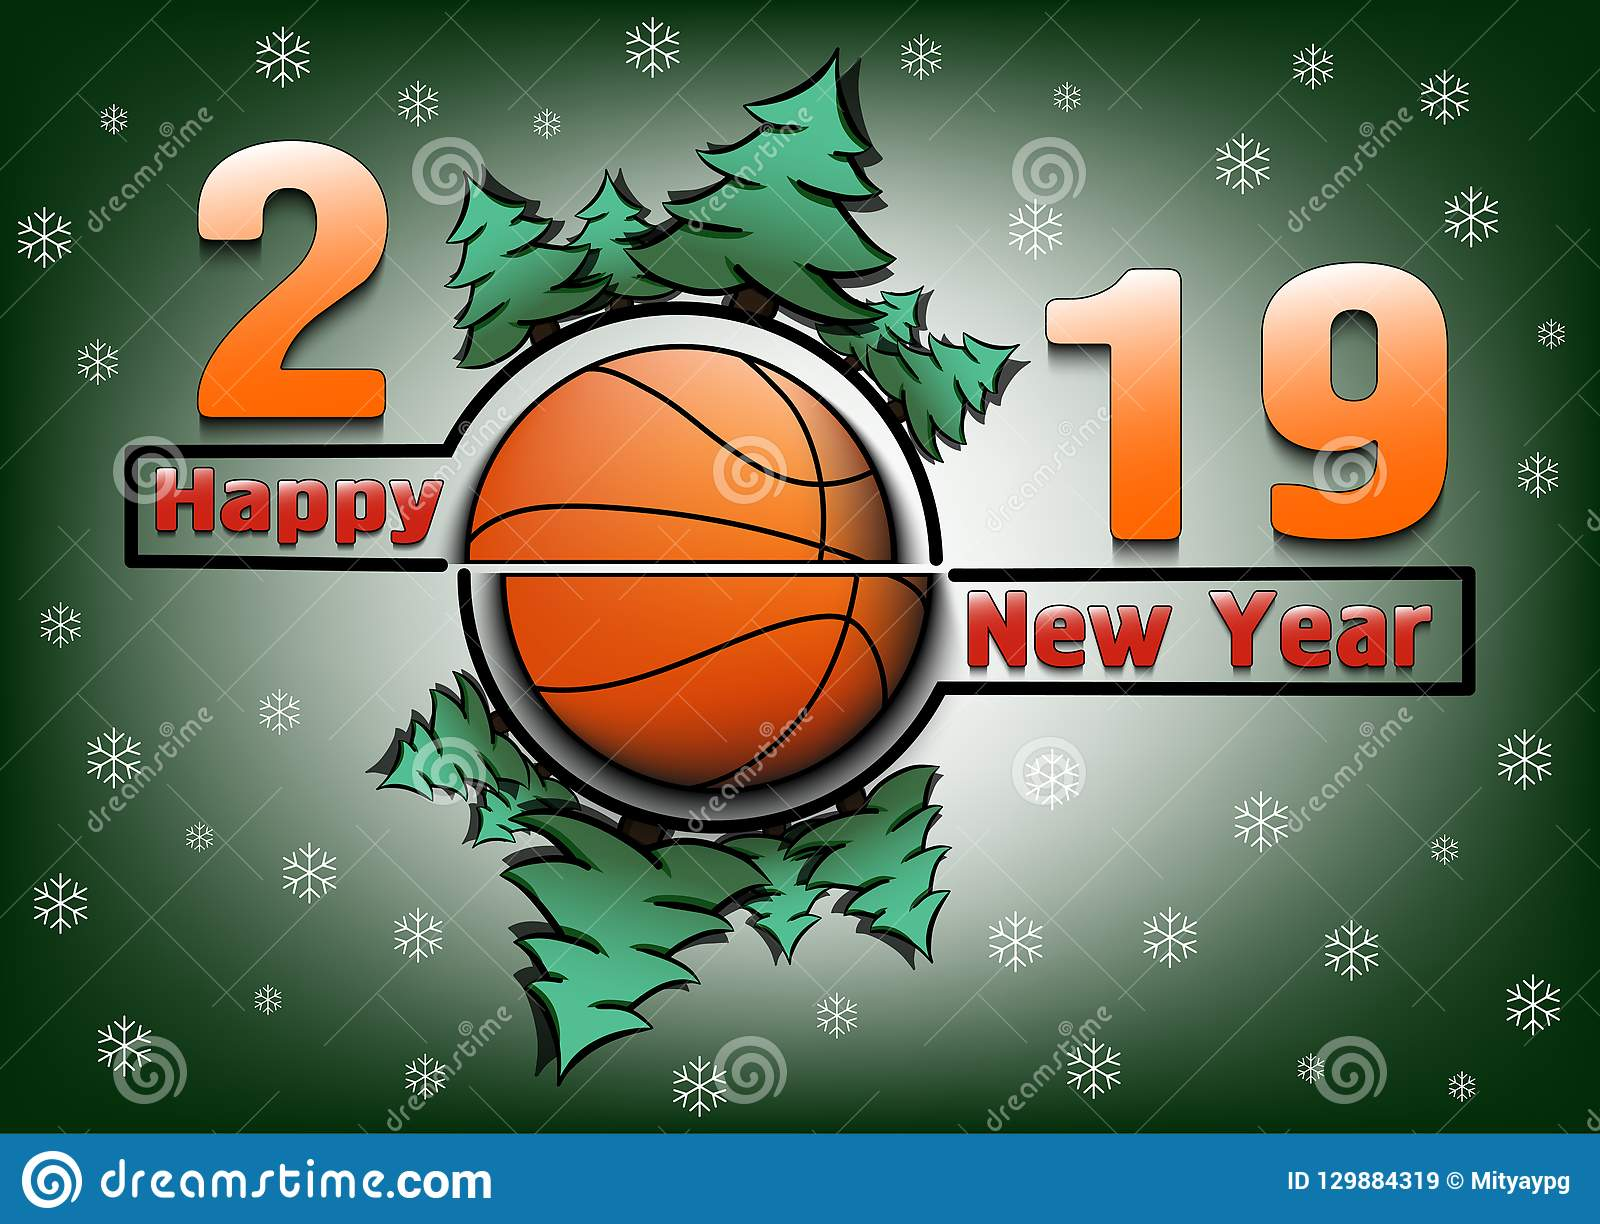 happy new year 2019 and basketball with christmas trees on an snowflakes background creative design pattern for greeting card banner poster flyer